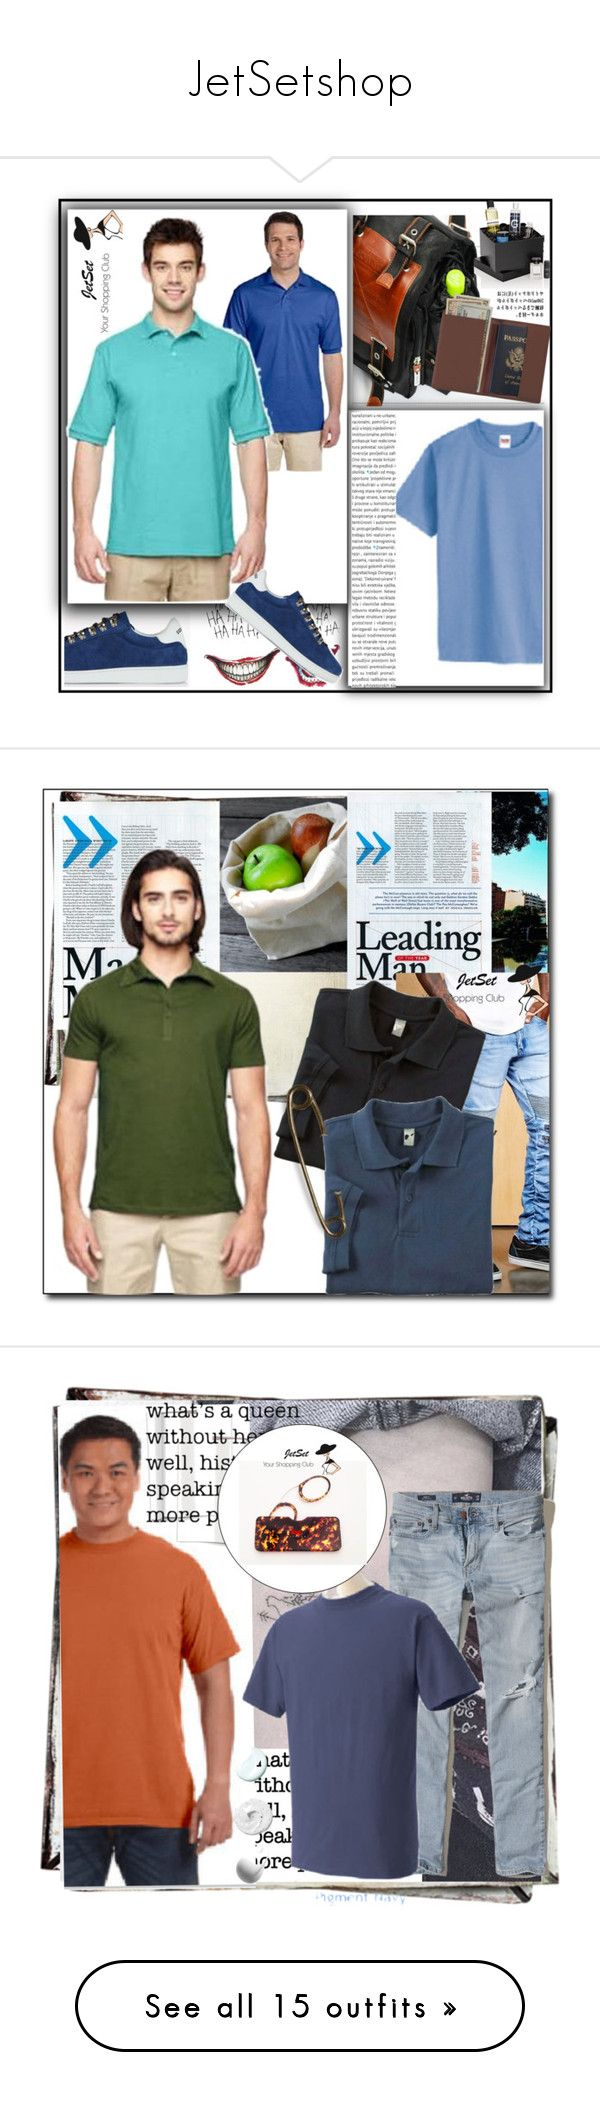 """""""JetSetshop"""" by k-lole ❤ liked on Polyvore featuring Rubie's Costume Co., Dsquared2, Royce Leather, Beauty Box, Ringspun, 21 Men, men's fashion, menswear, Hollister Co. and Comfort Colors"""